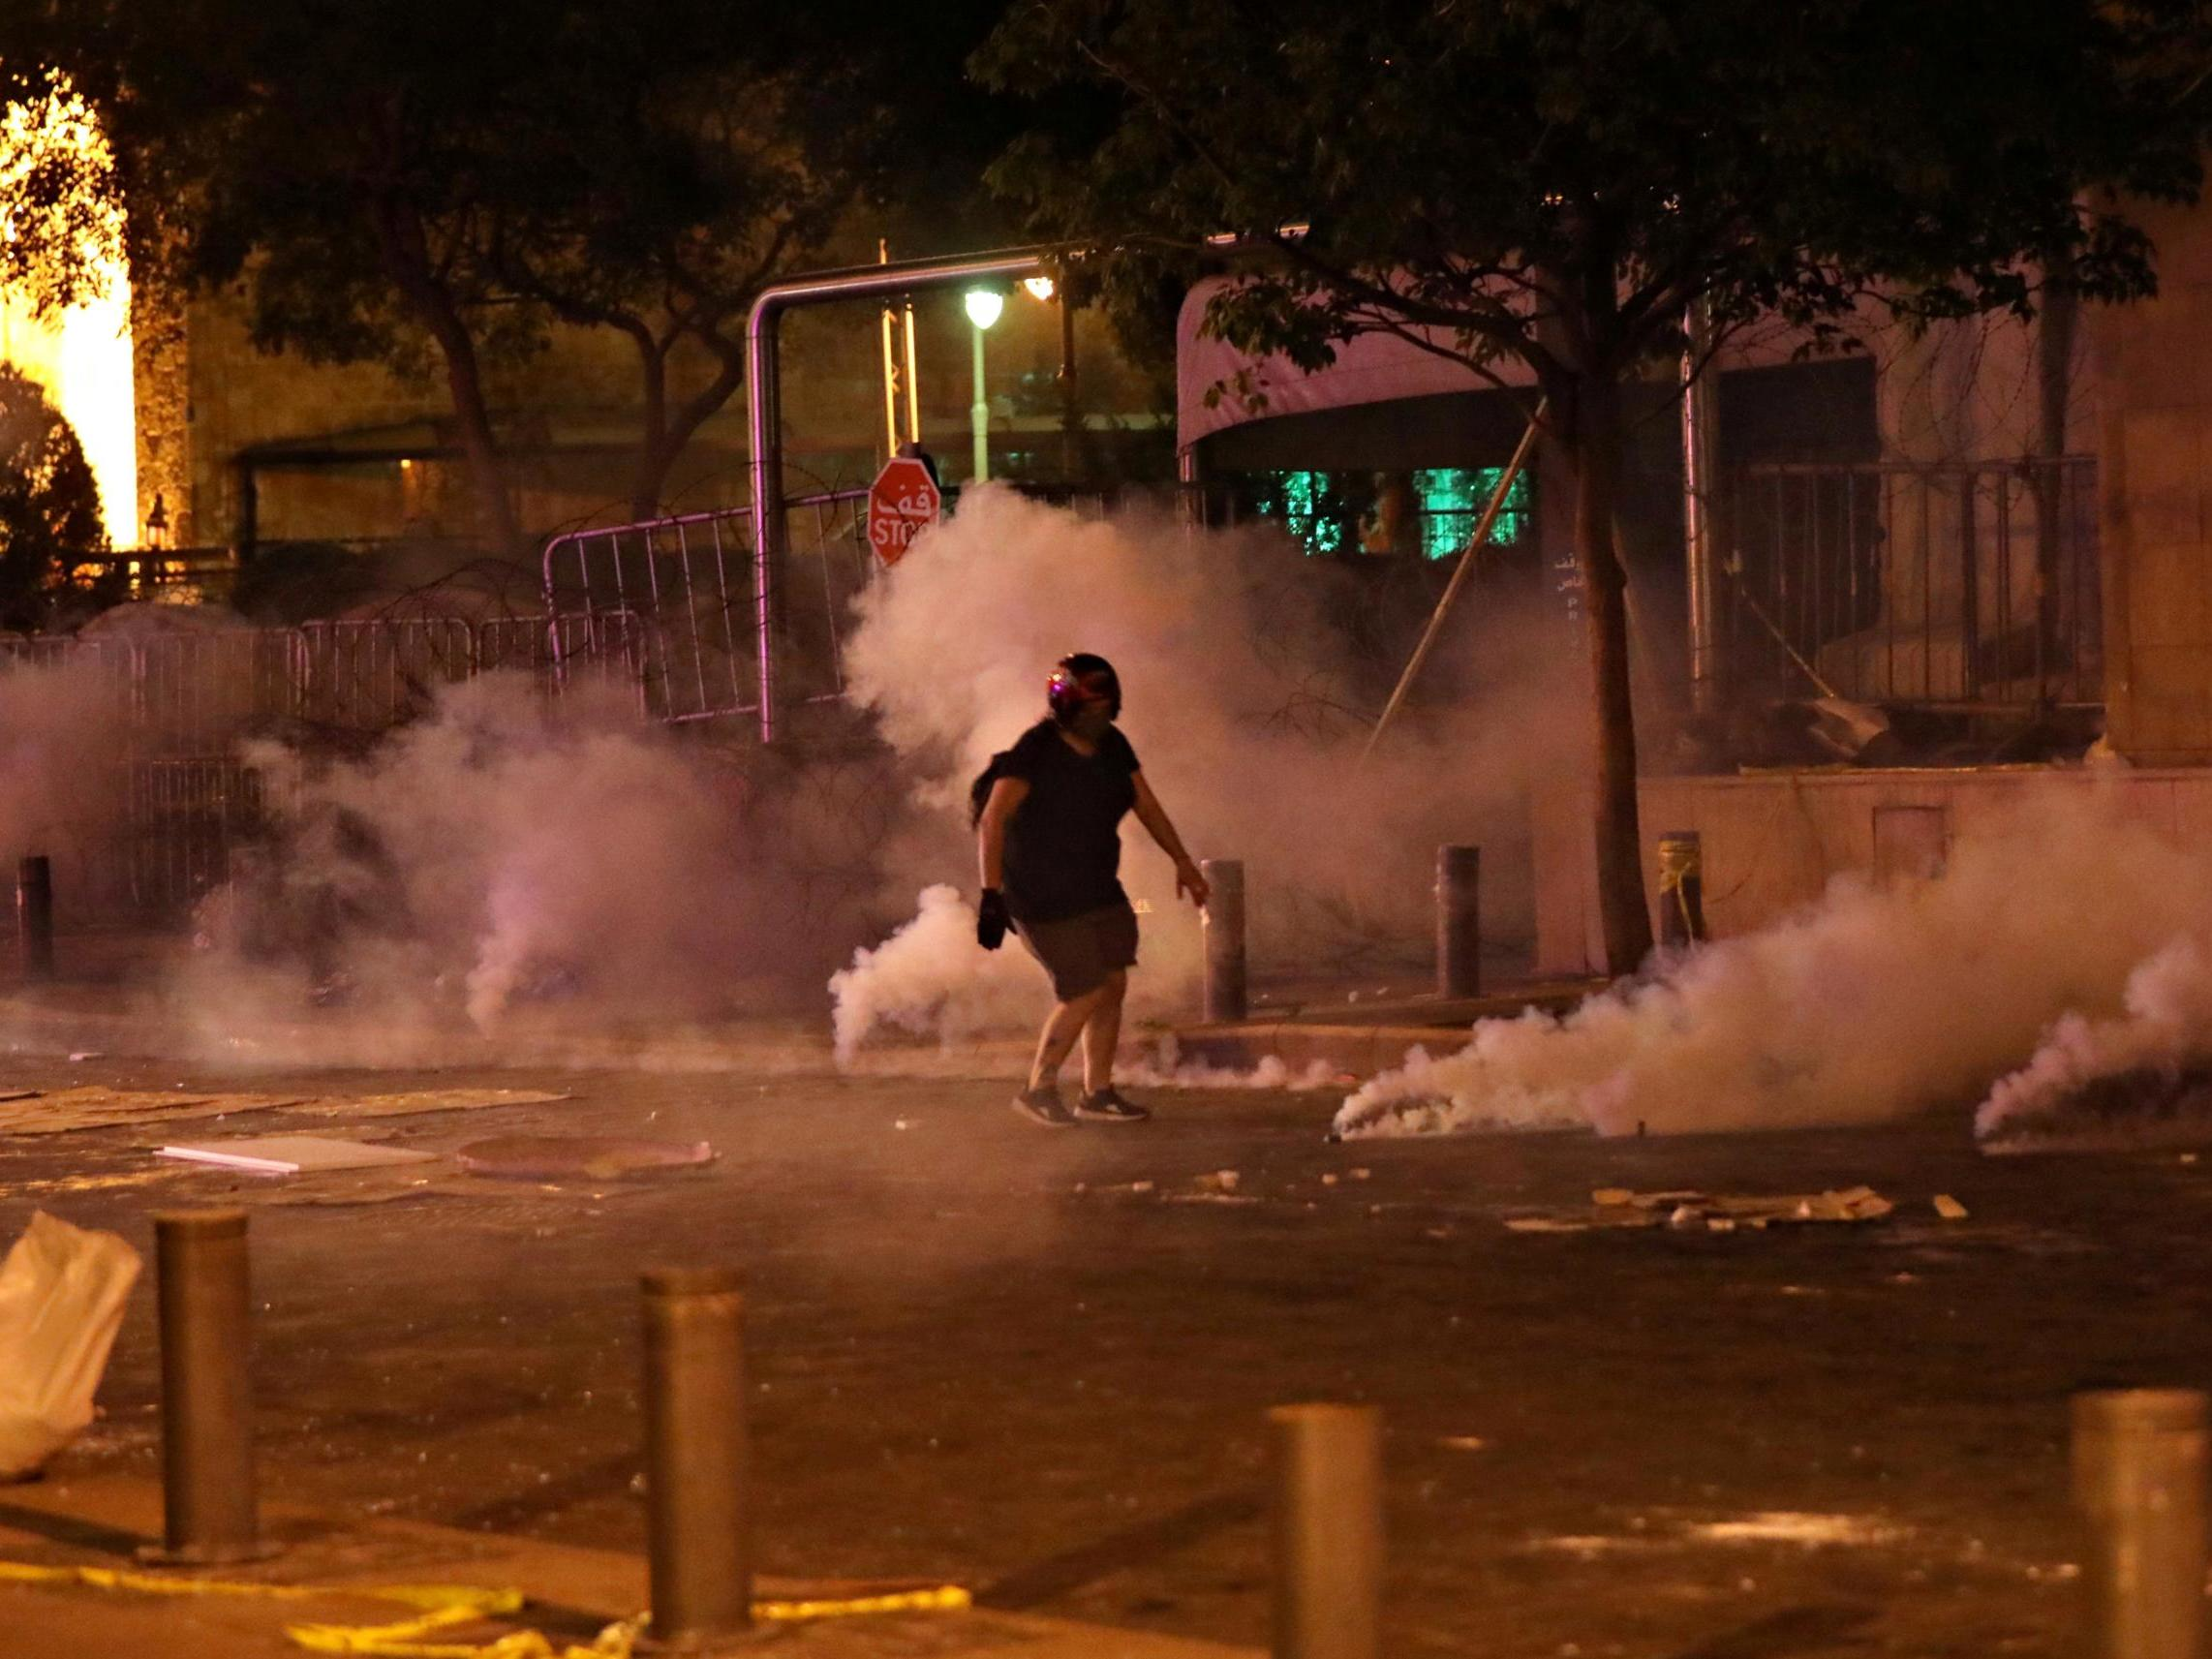 Beirut explosion: Protesters tear-gassed after trying to storm Lebanon's parliament as anger grows over port blast